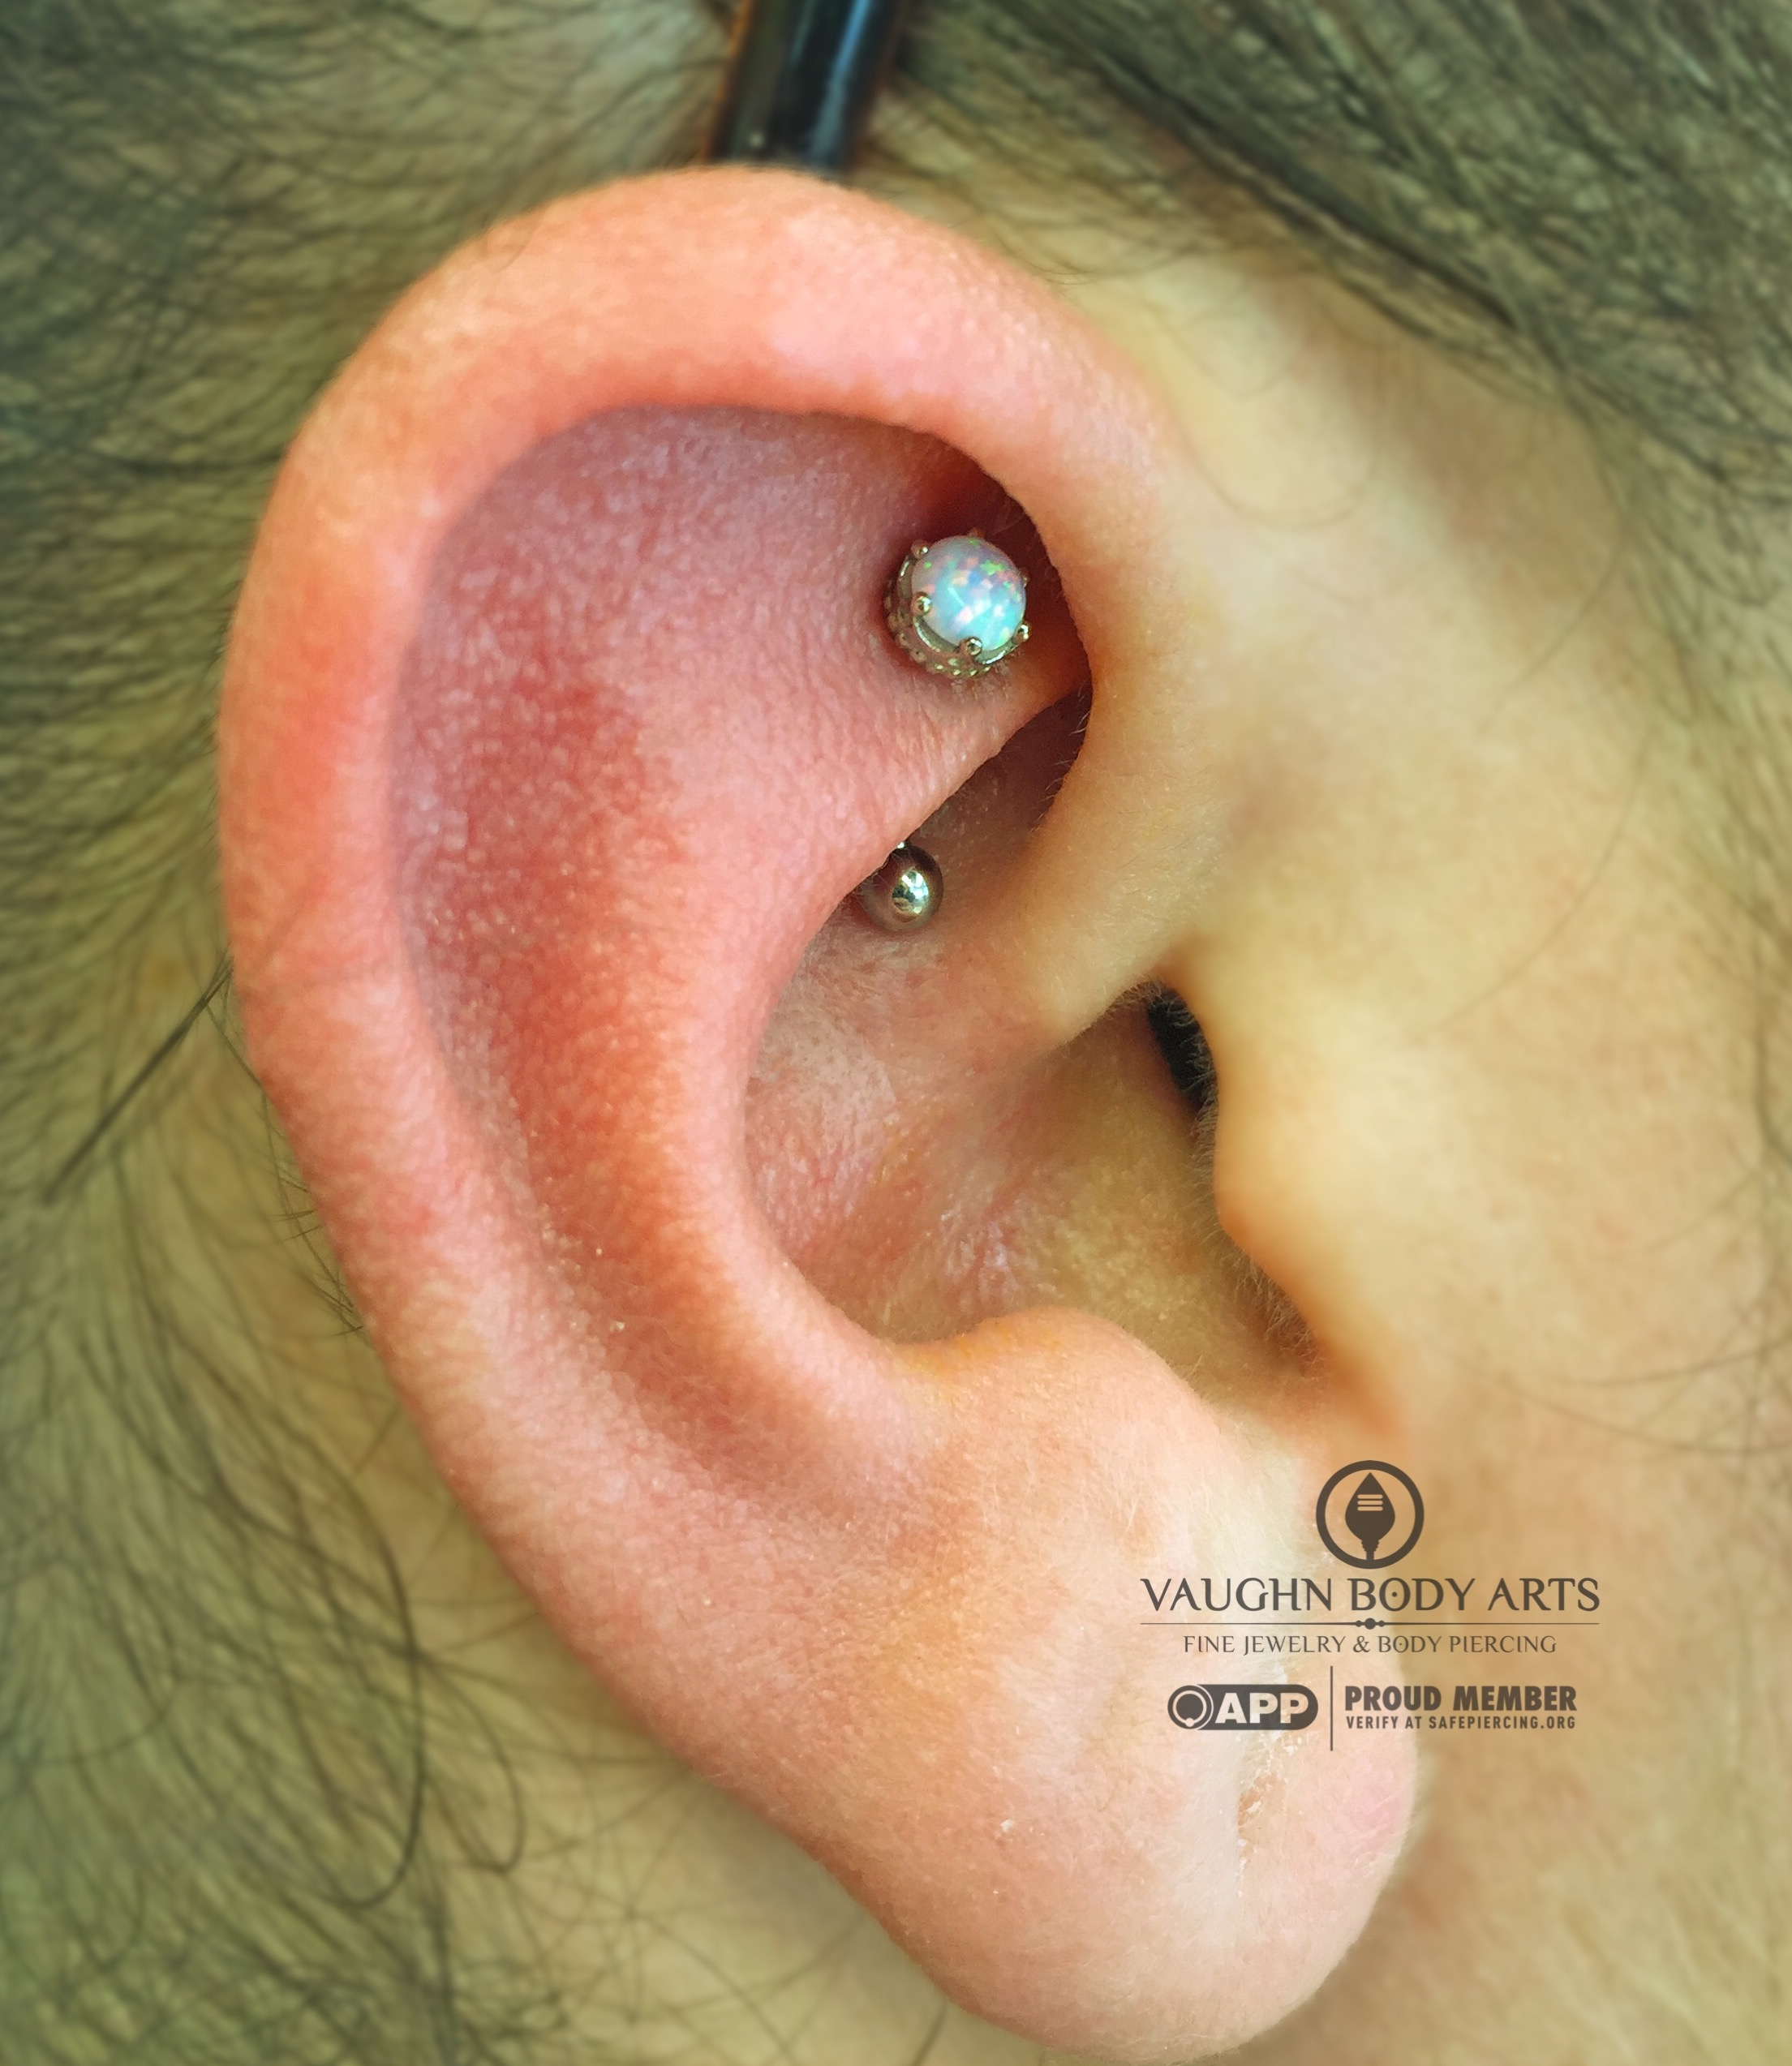 """Rook piercing with an 18k white gold and opal """"Queen"""" end from Anatometal."""